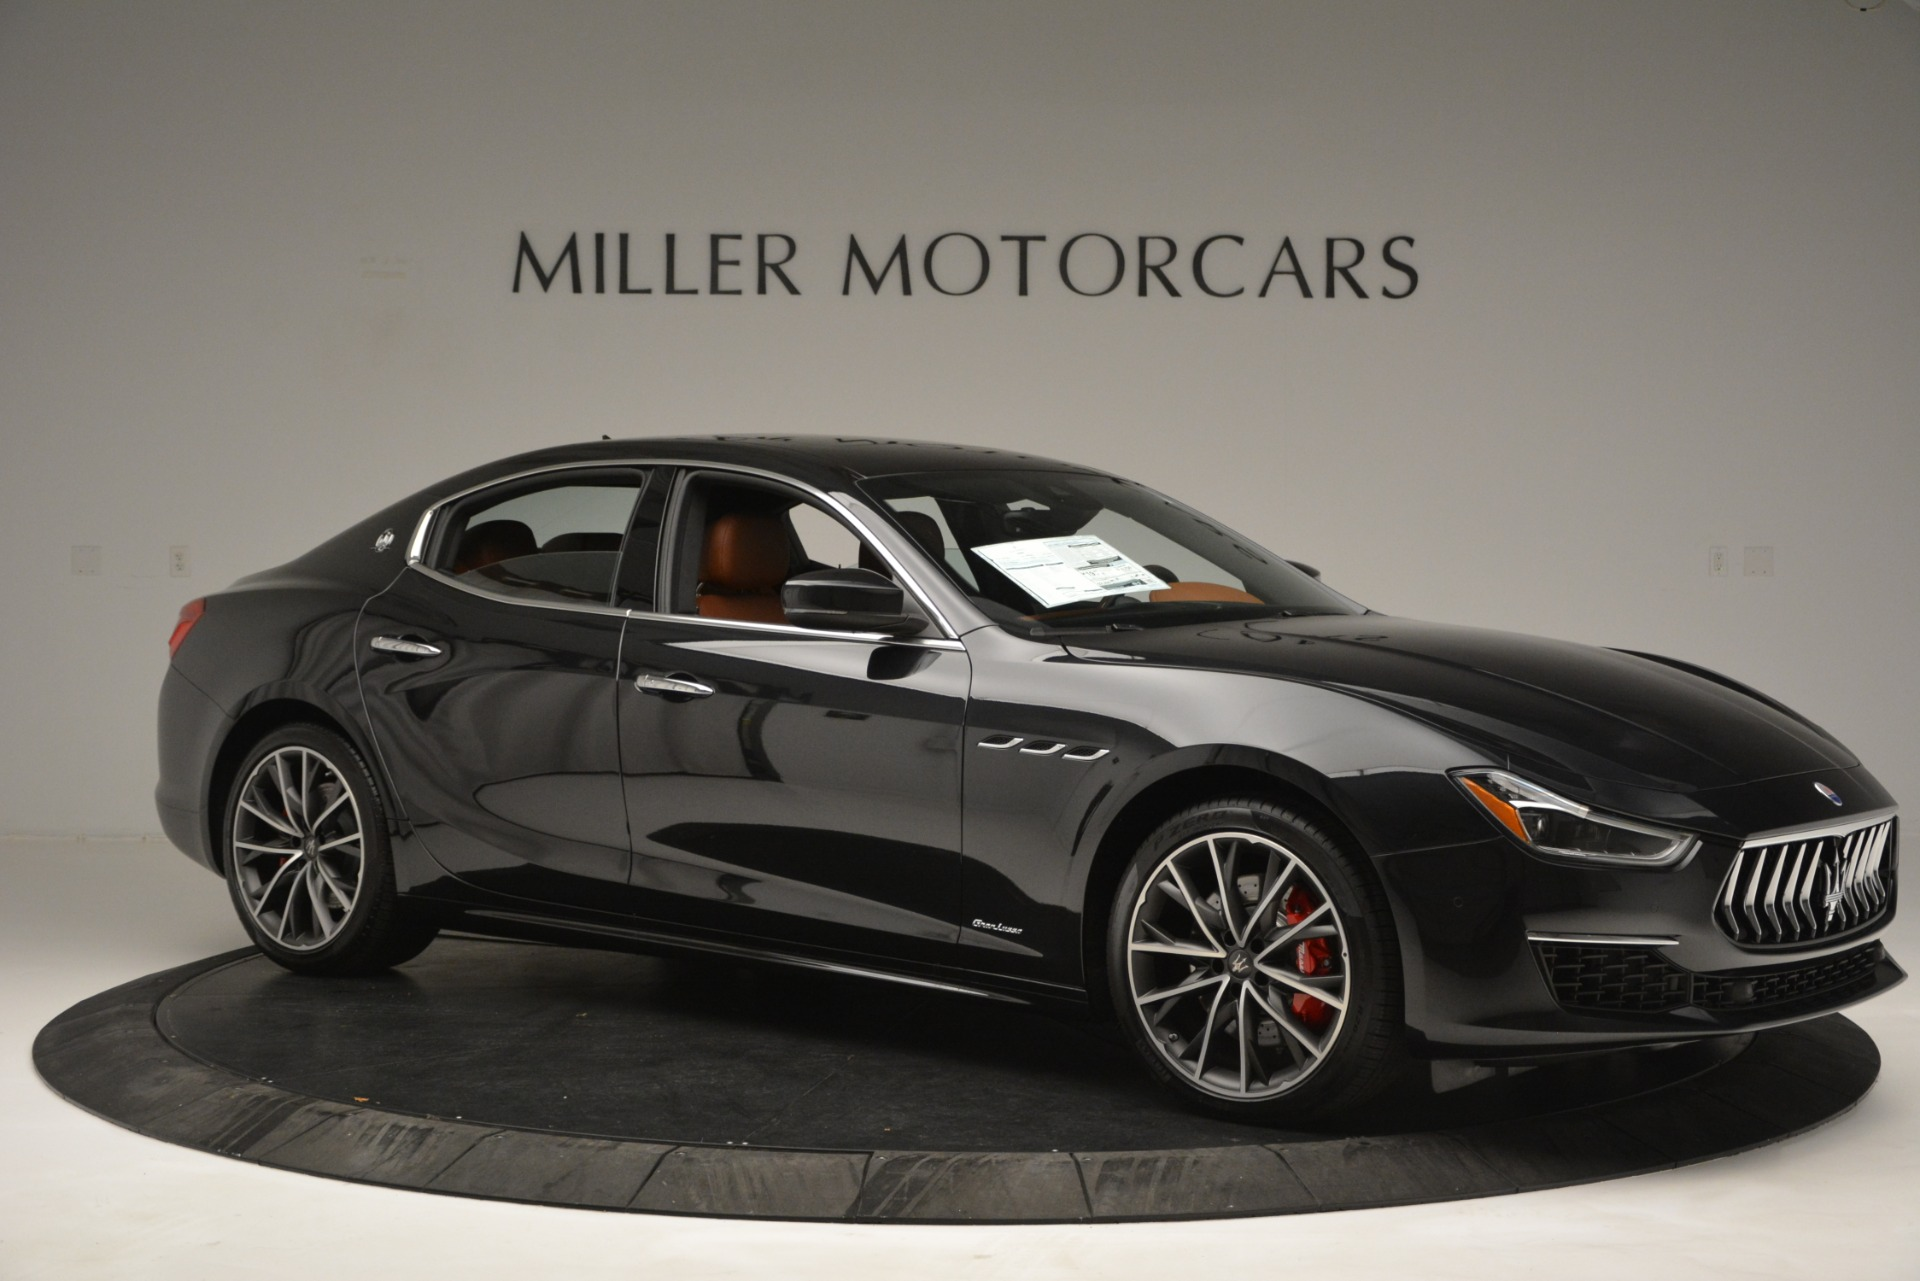 New 2019 Maserati Ghibli S Q4 GranLusso For Sale In Greenwich, CT. Alfa Romeo of Greenwich, M2222 2589_p10